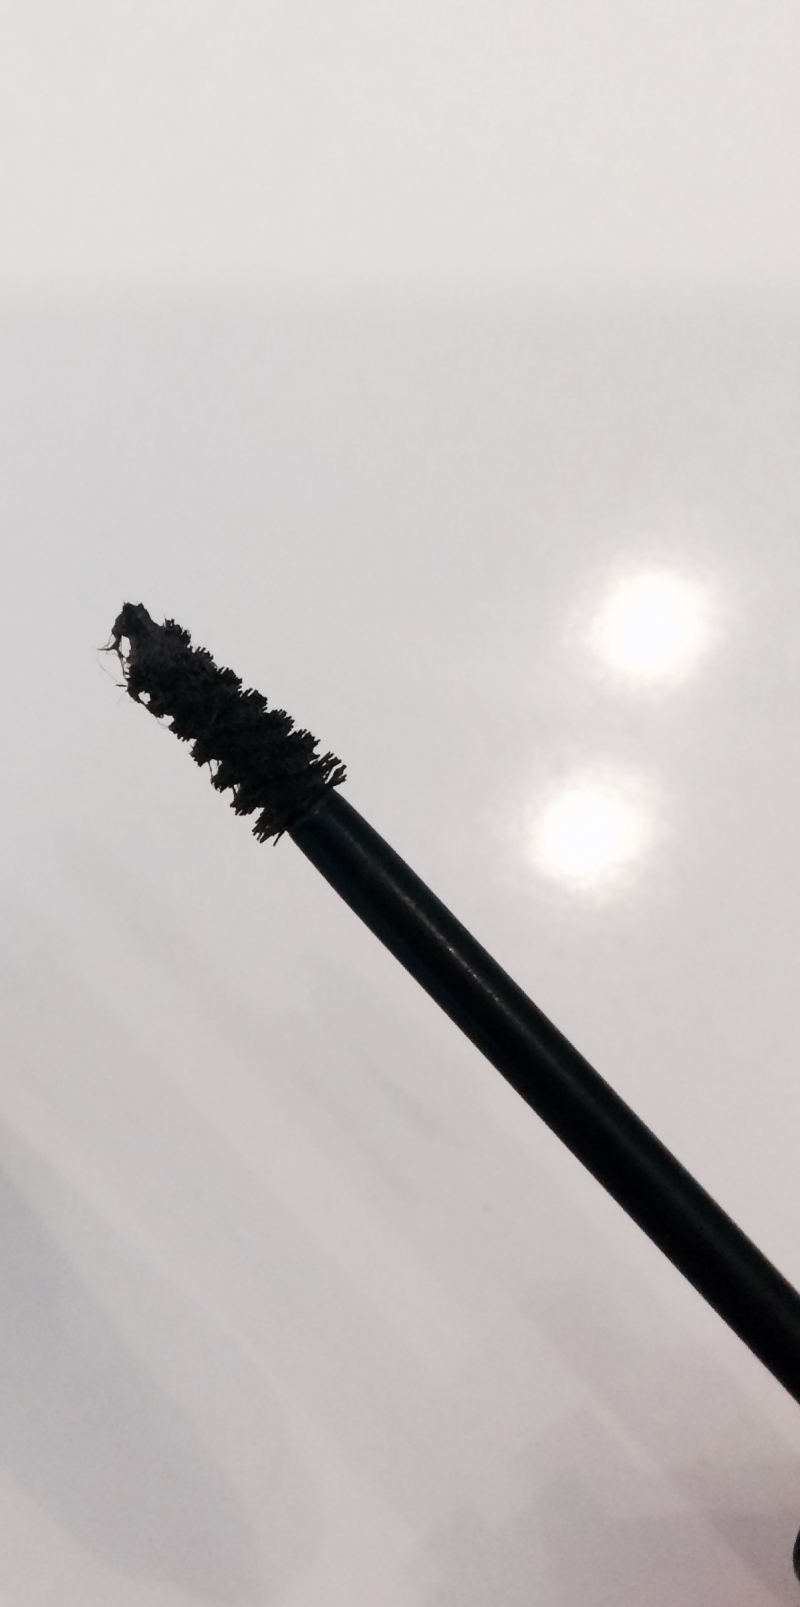 Swatch Gimme brow - Le mascara pour sourcils, Benefit Cosmetics